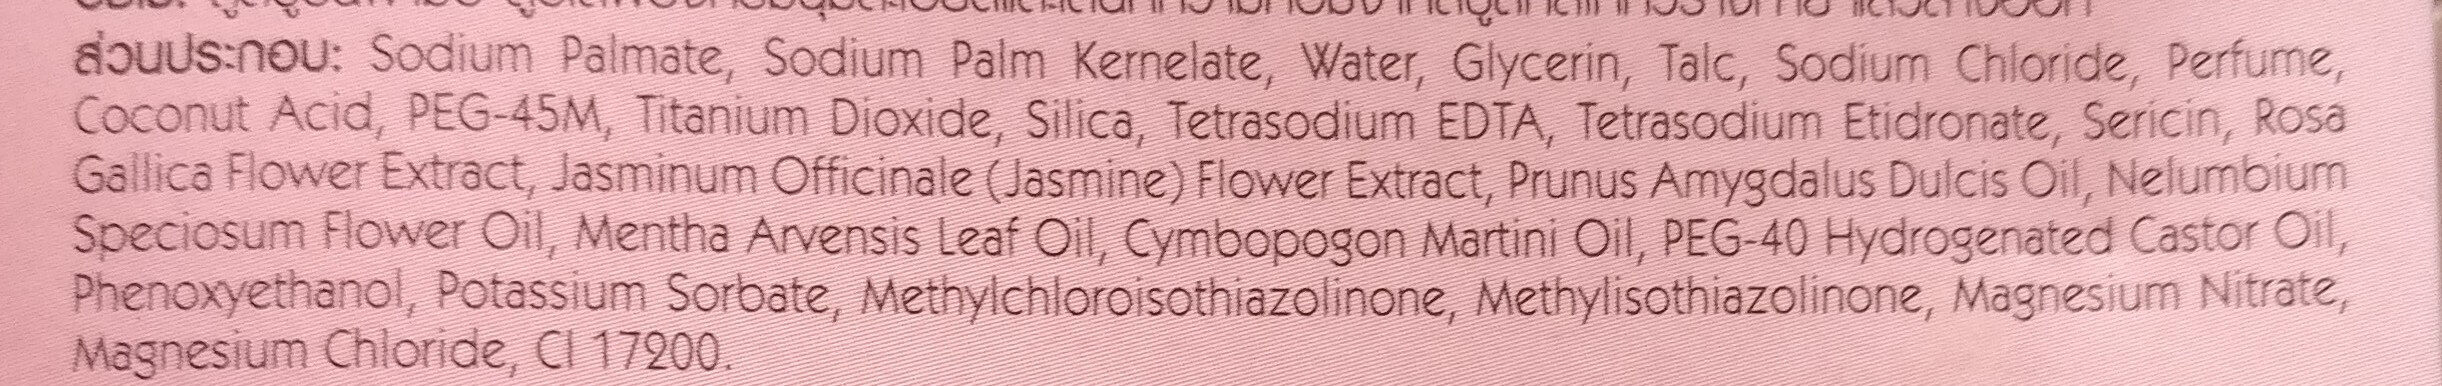 Sakura Bloom Soap - Ingredients - de